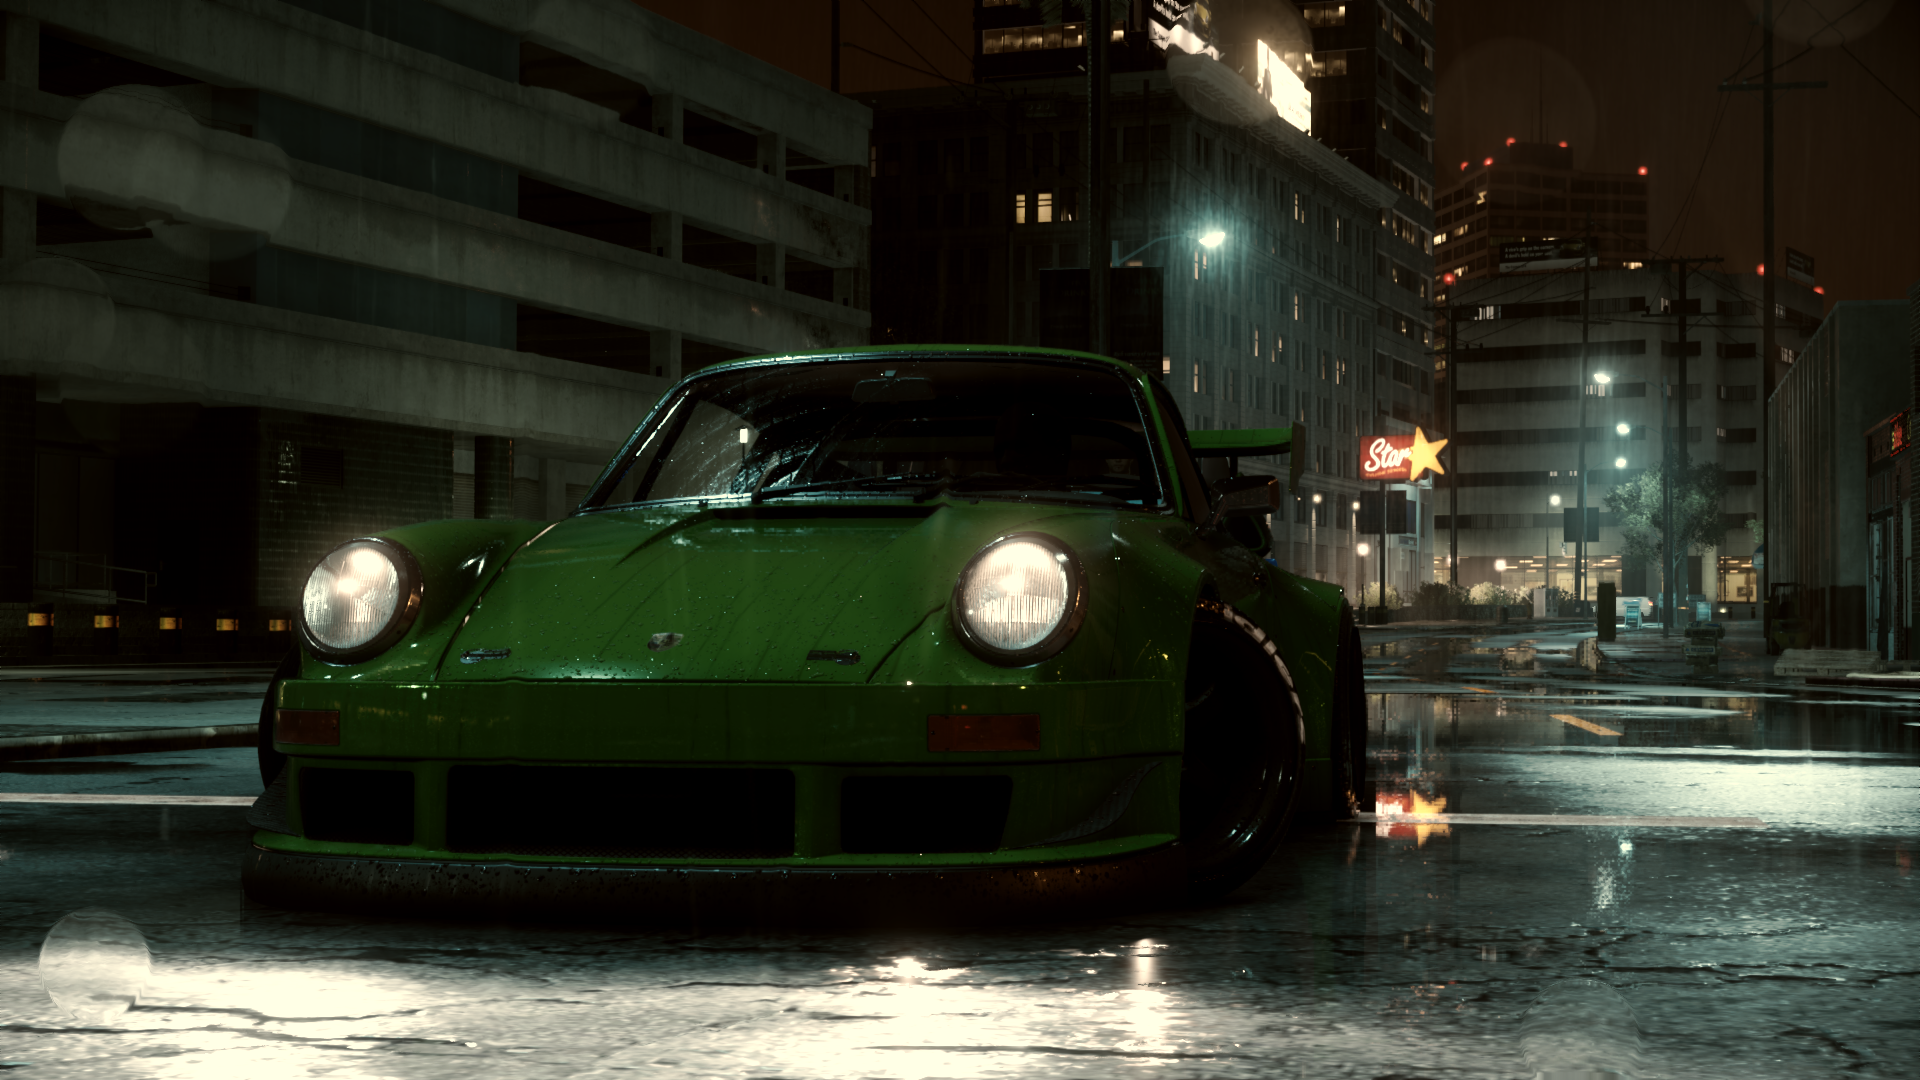 Rwb 4k Wallpaper: RWB Porsche 911 HD Wallpaper